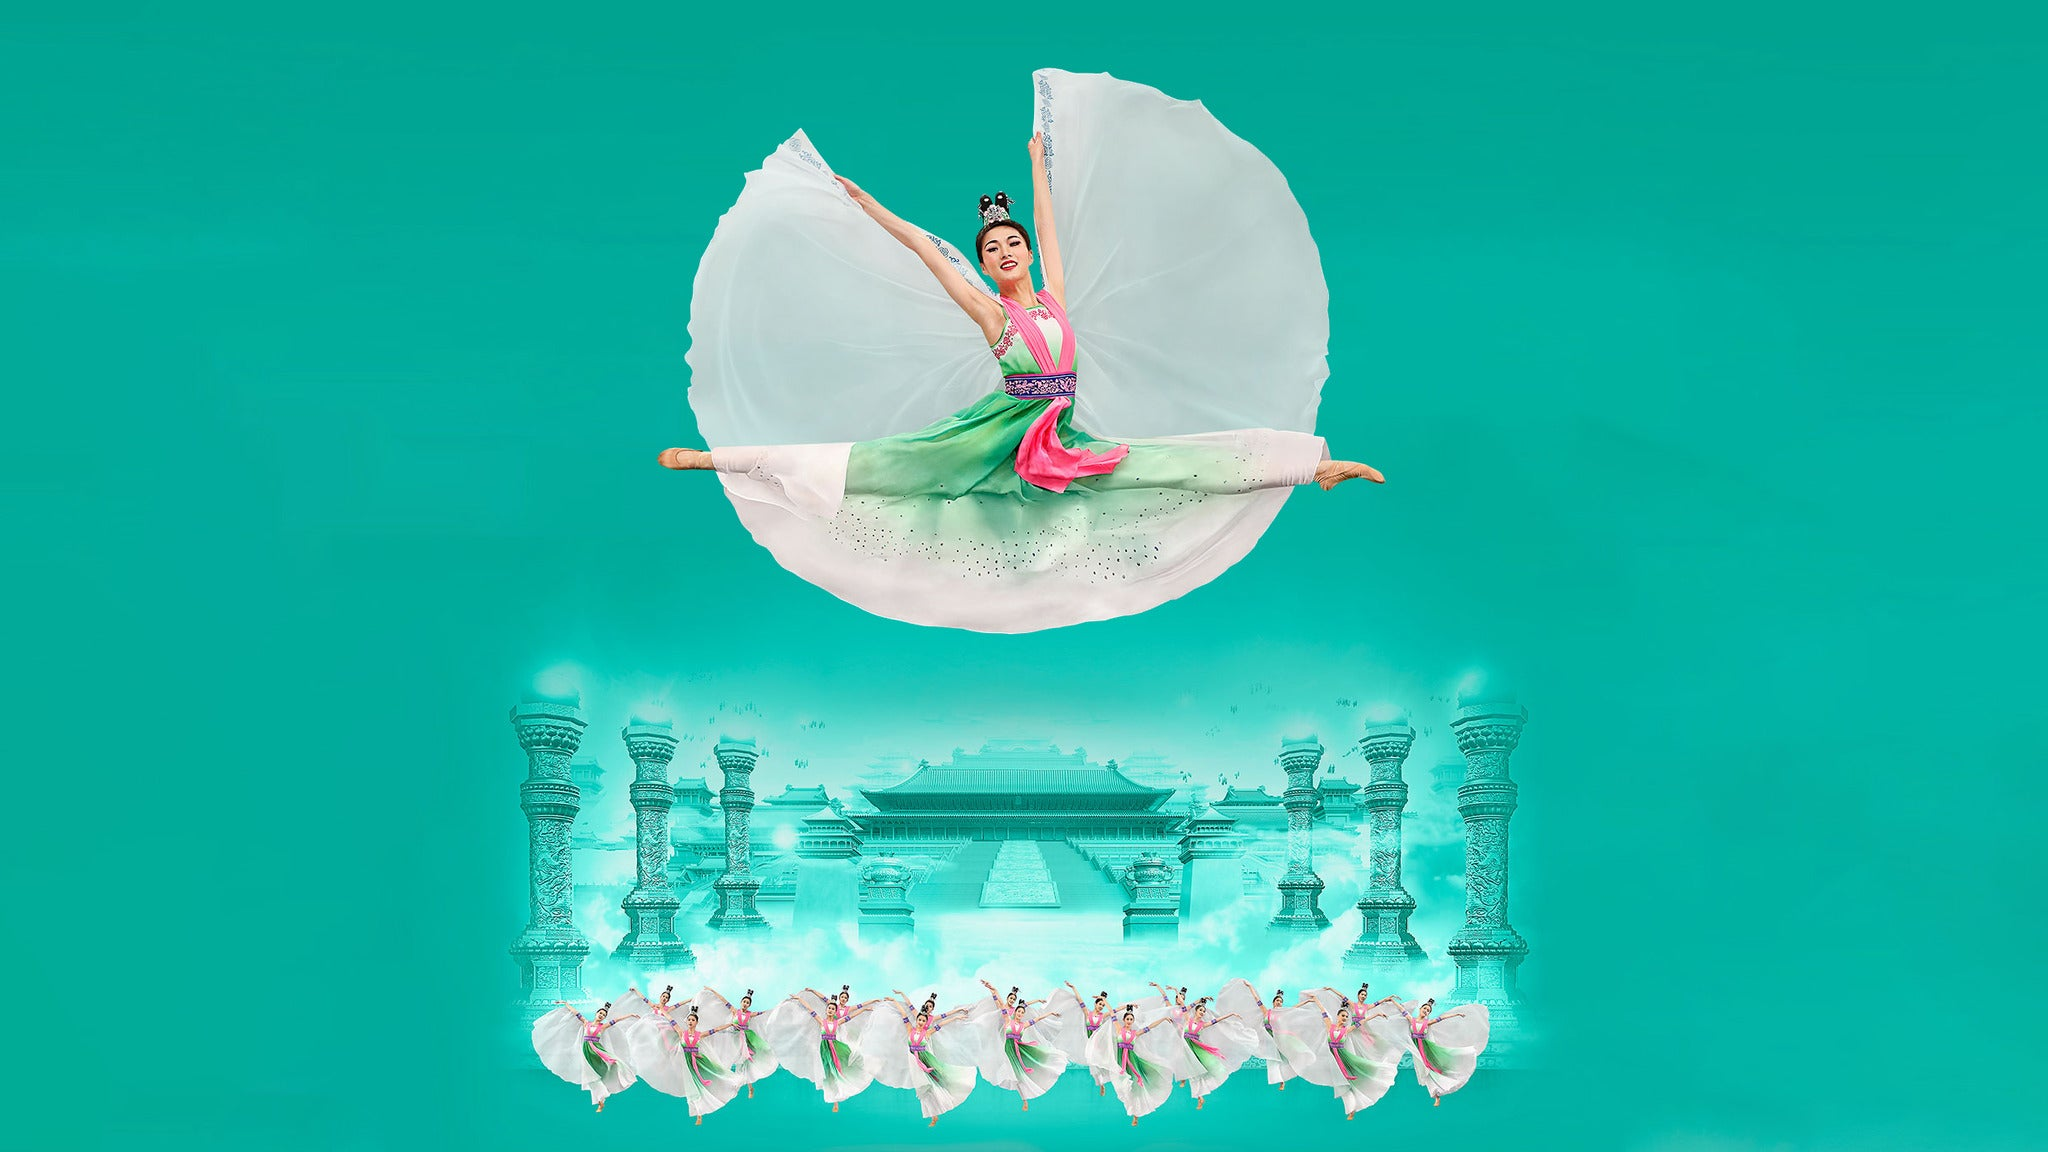 Shen Yun Performing Arts at Eisemann Center